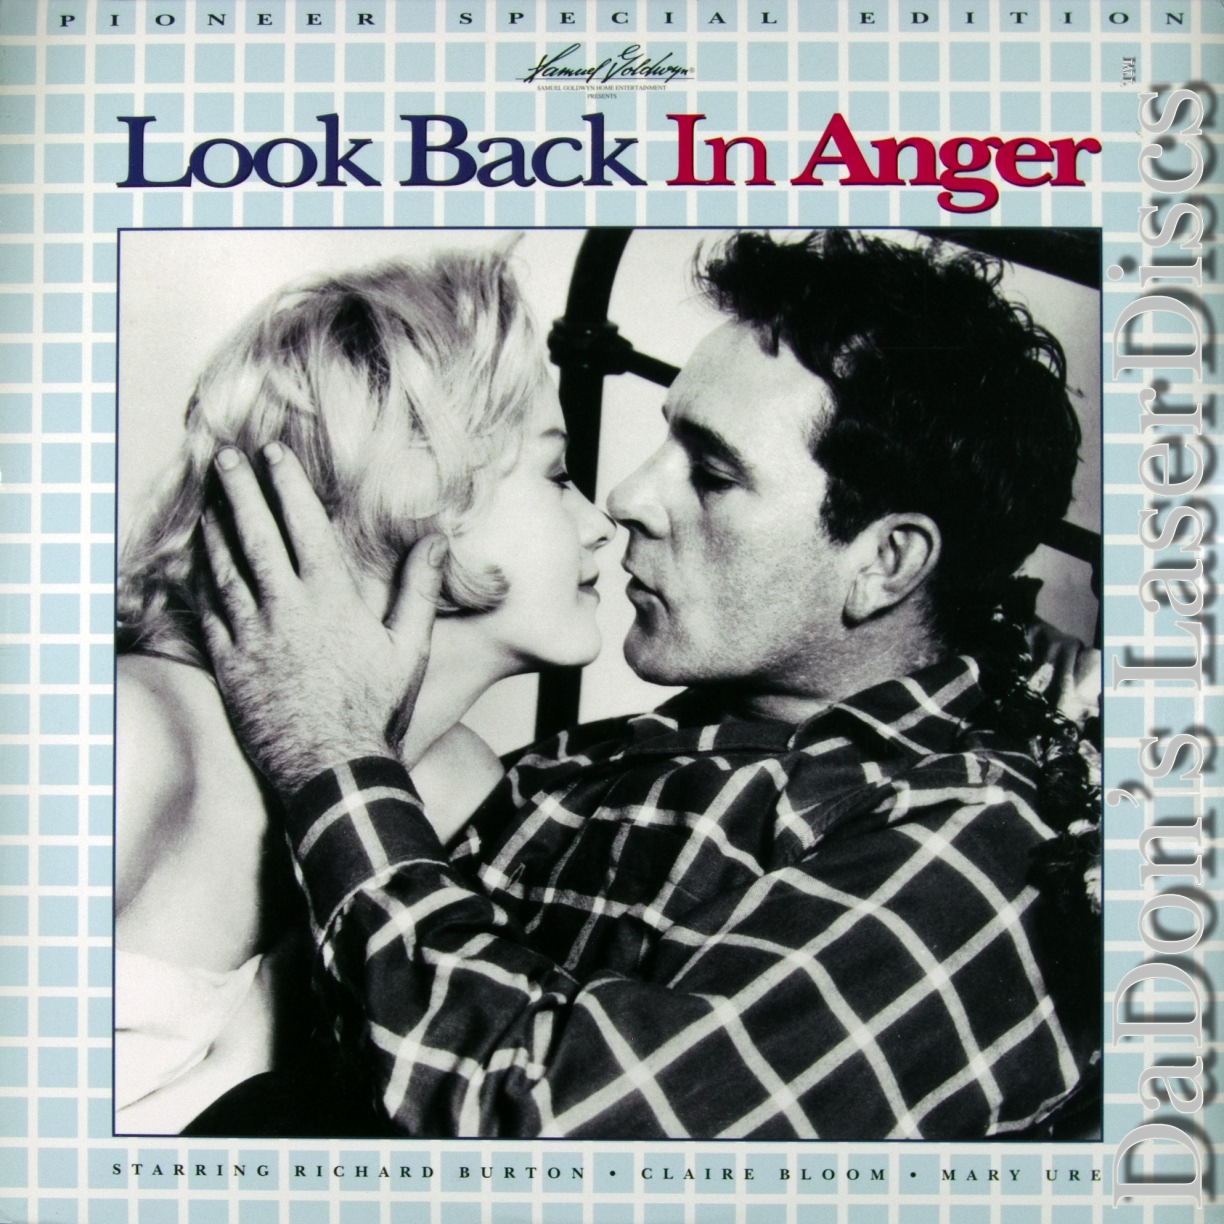 Look Back In Anger Laserdisc, Rare Laserdiscs, Pioneer. Kitchen Wallpaper Backsplash. Painting Laminate Kitchen Countertops. Kitchen Floor Color Ideas. How To Care For Granite Countertops In Kitchen. Carrara Marble Kitchen Countertops. Mural Tiles For Kitchen Backsplash. Mosaic Tile Ideas For Kitchen Backsplashes. Wooden Countertops Kitchen